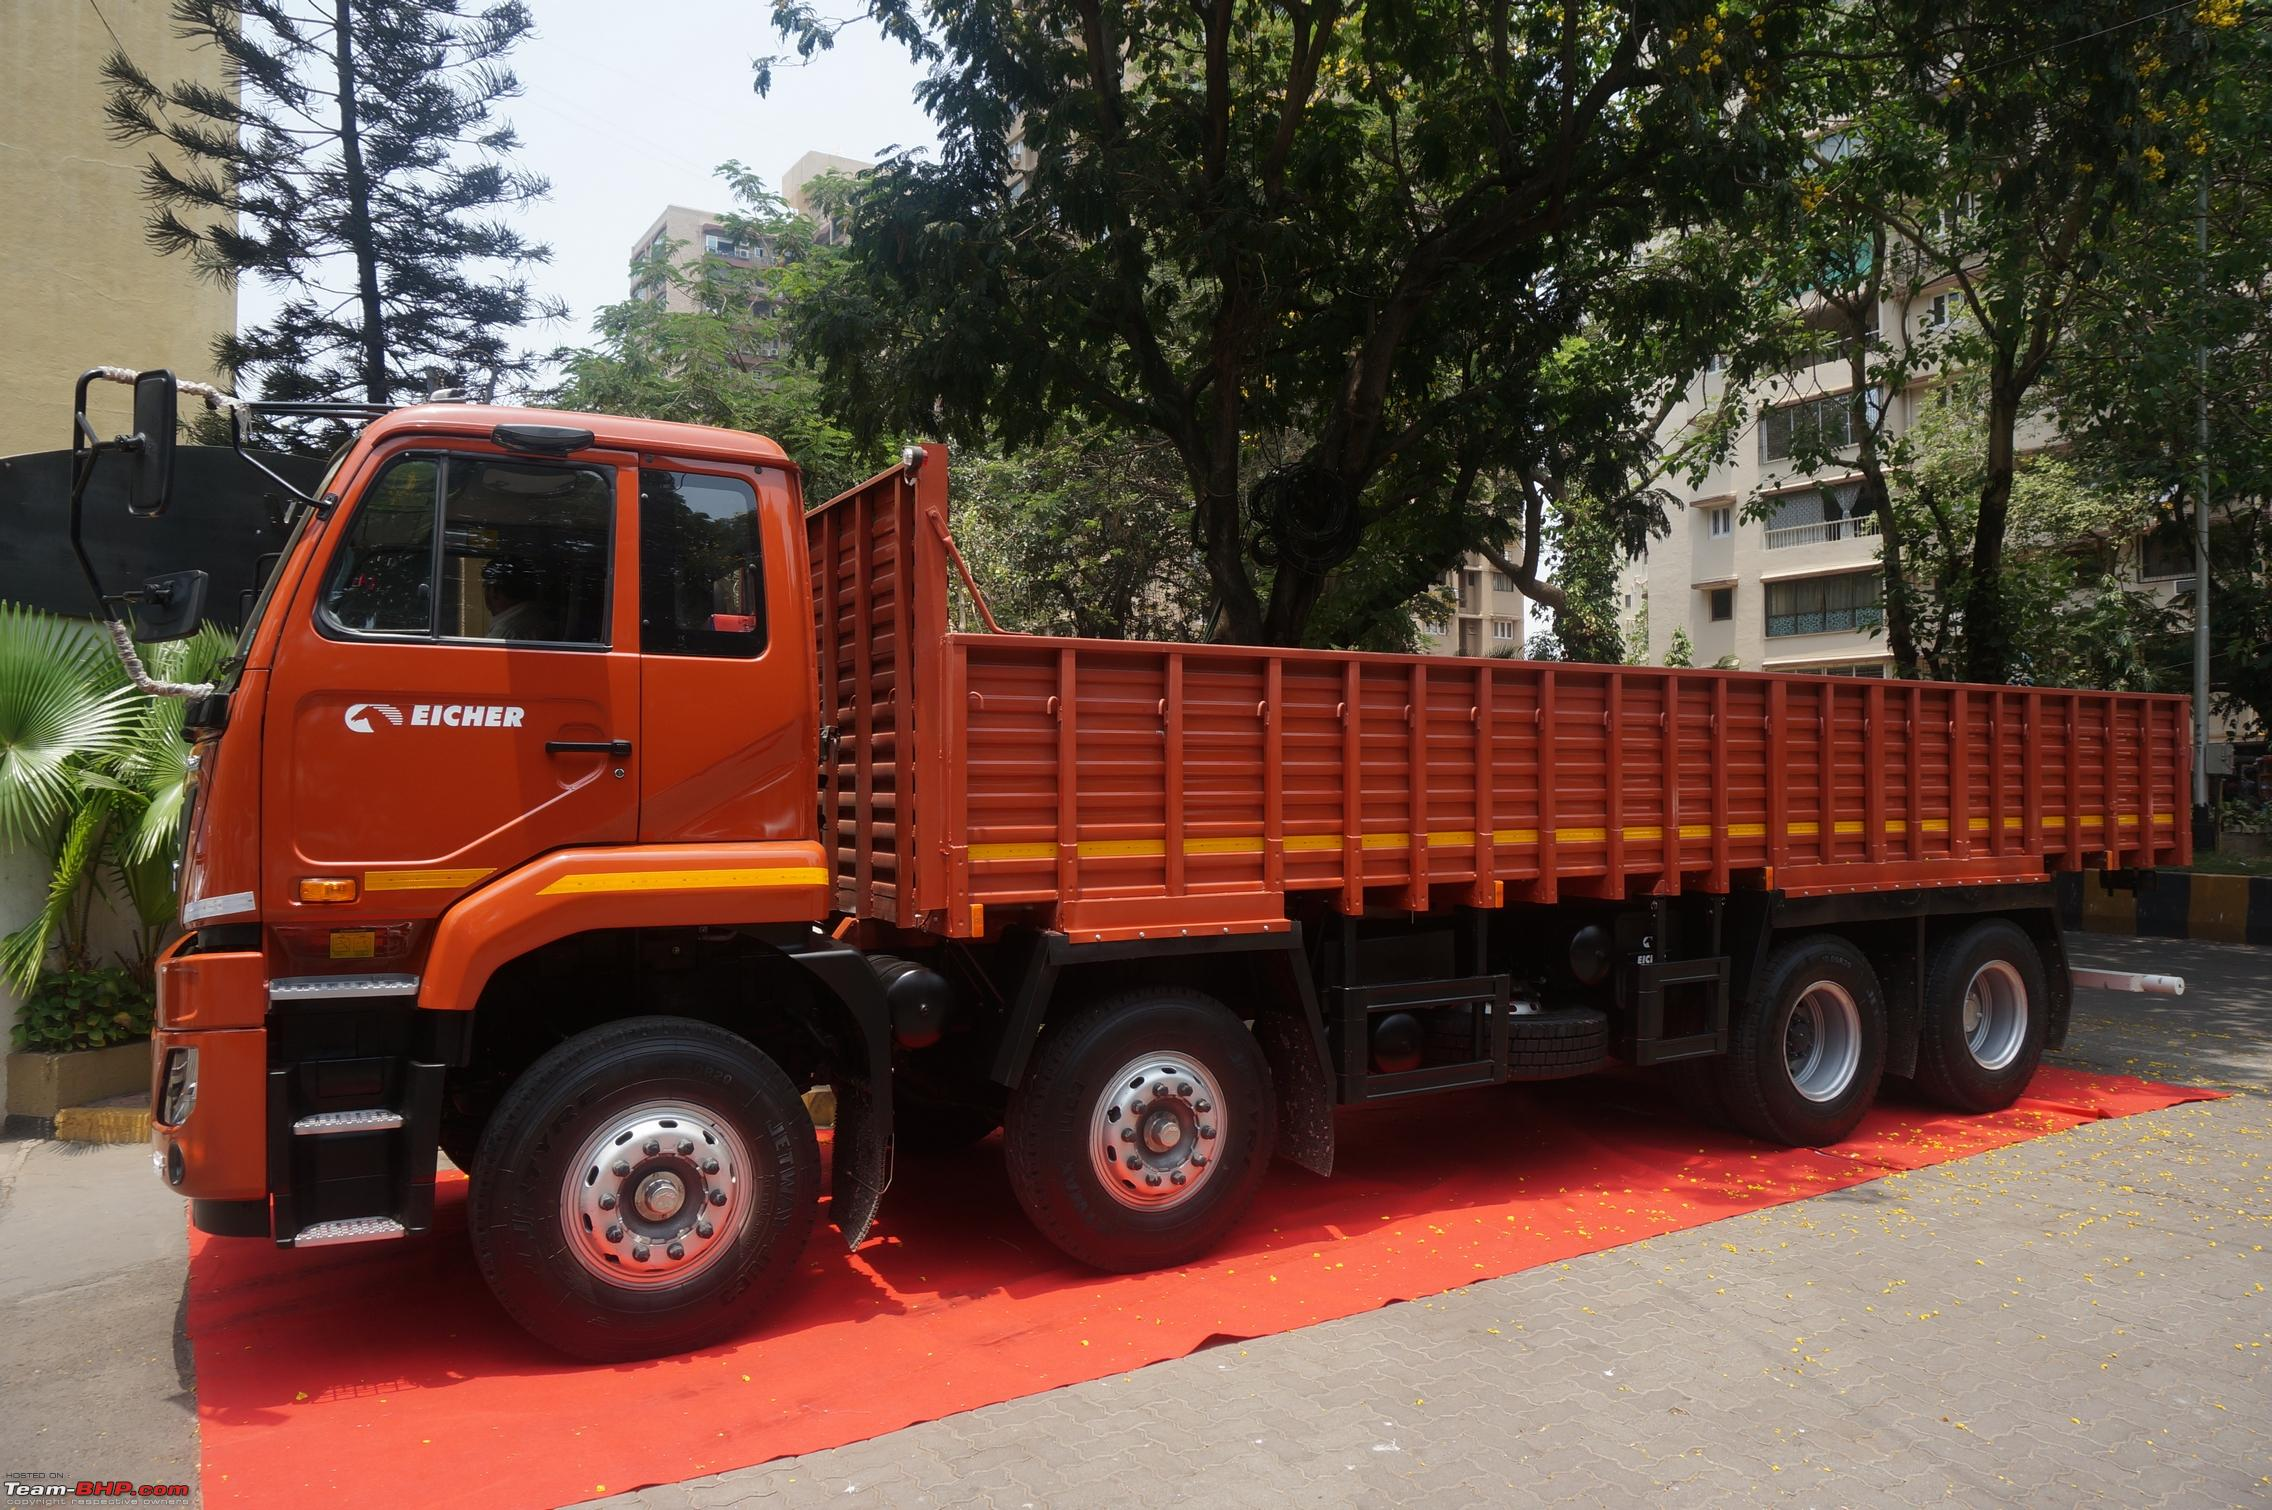 Eicher Pro 6000 Series launched in West India markets - Team-BHP